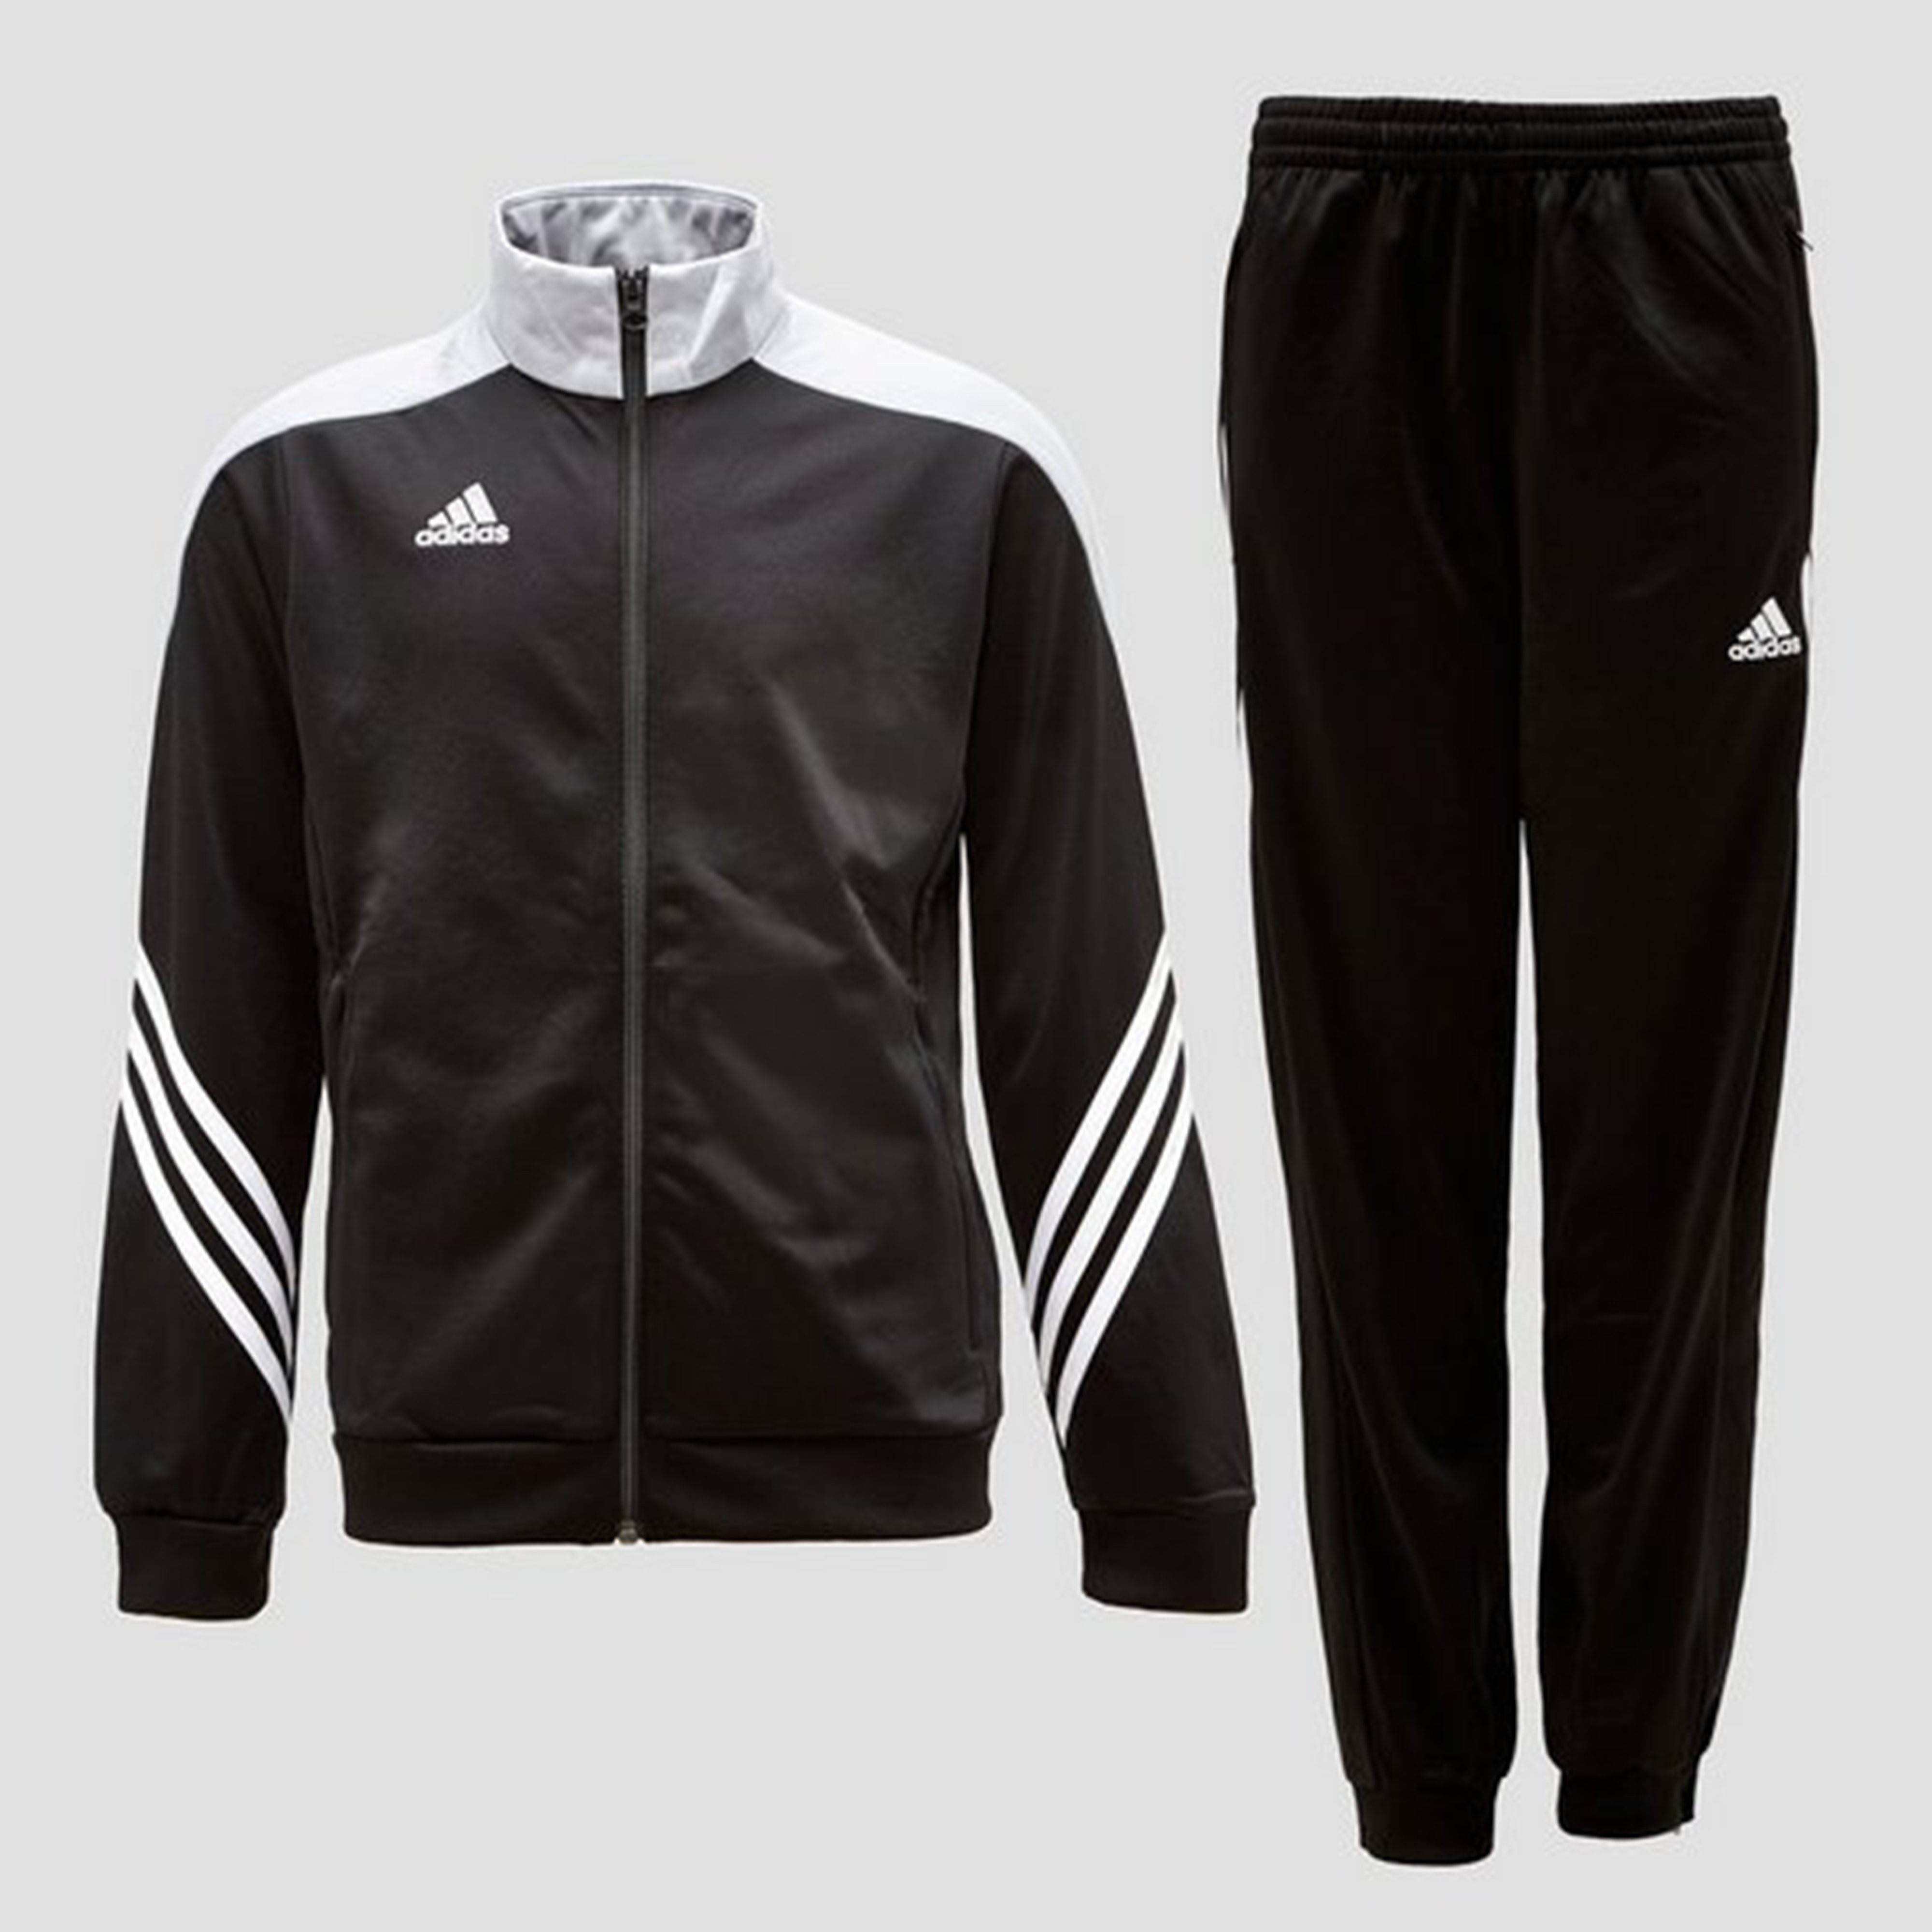 ADIDAS SERENO 14 TRAININGSPAK JR